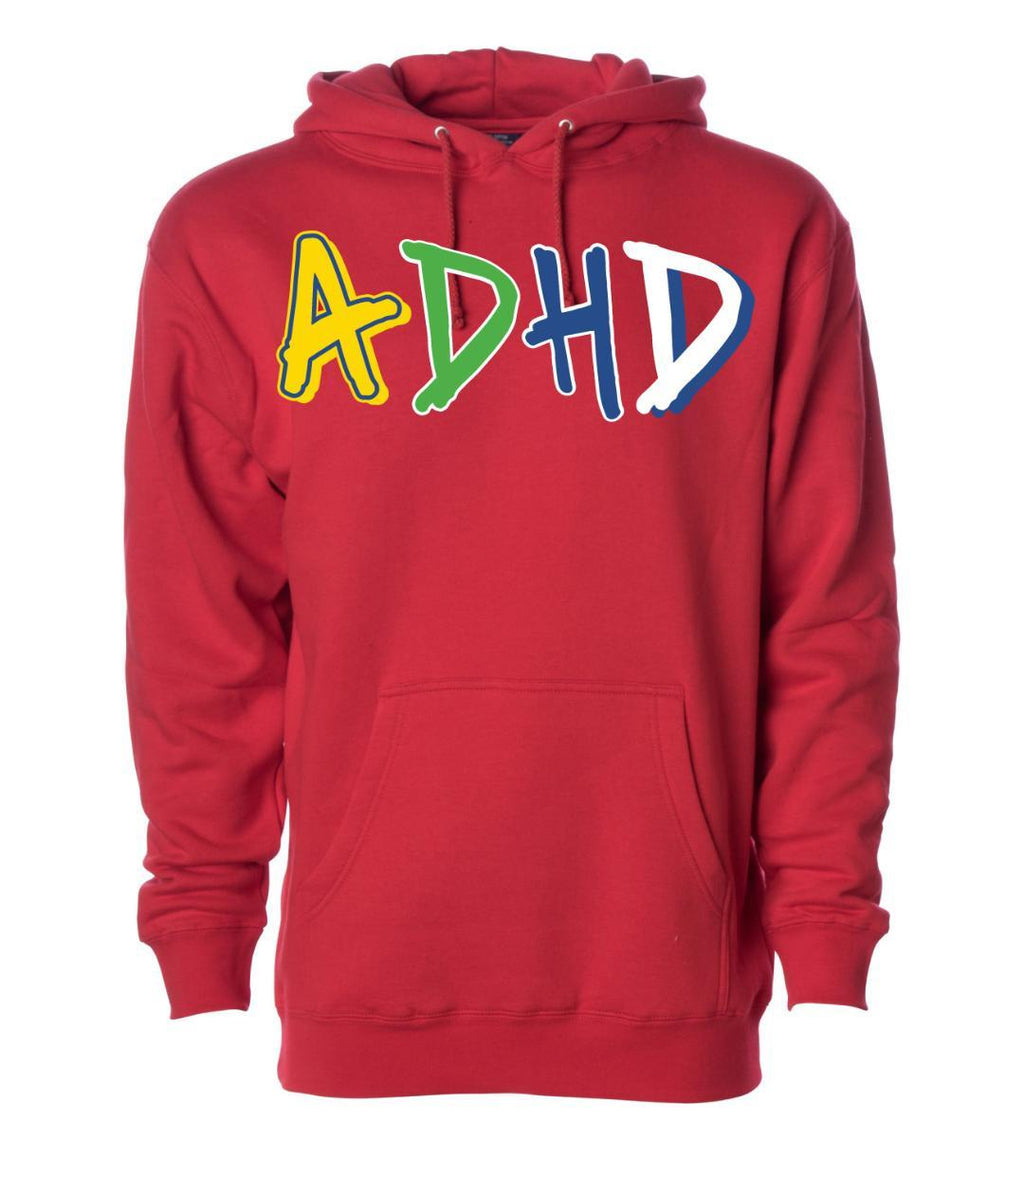 Red ADHD Hoodie + Instant ADHD Digital Download